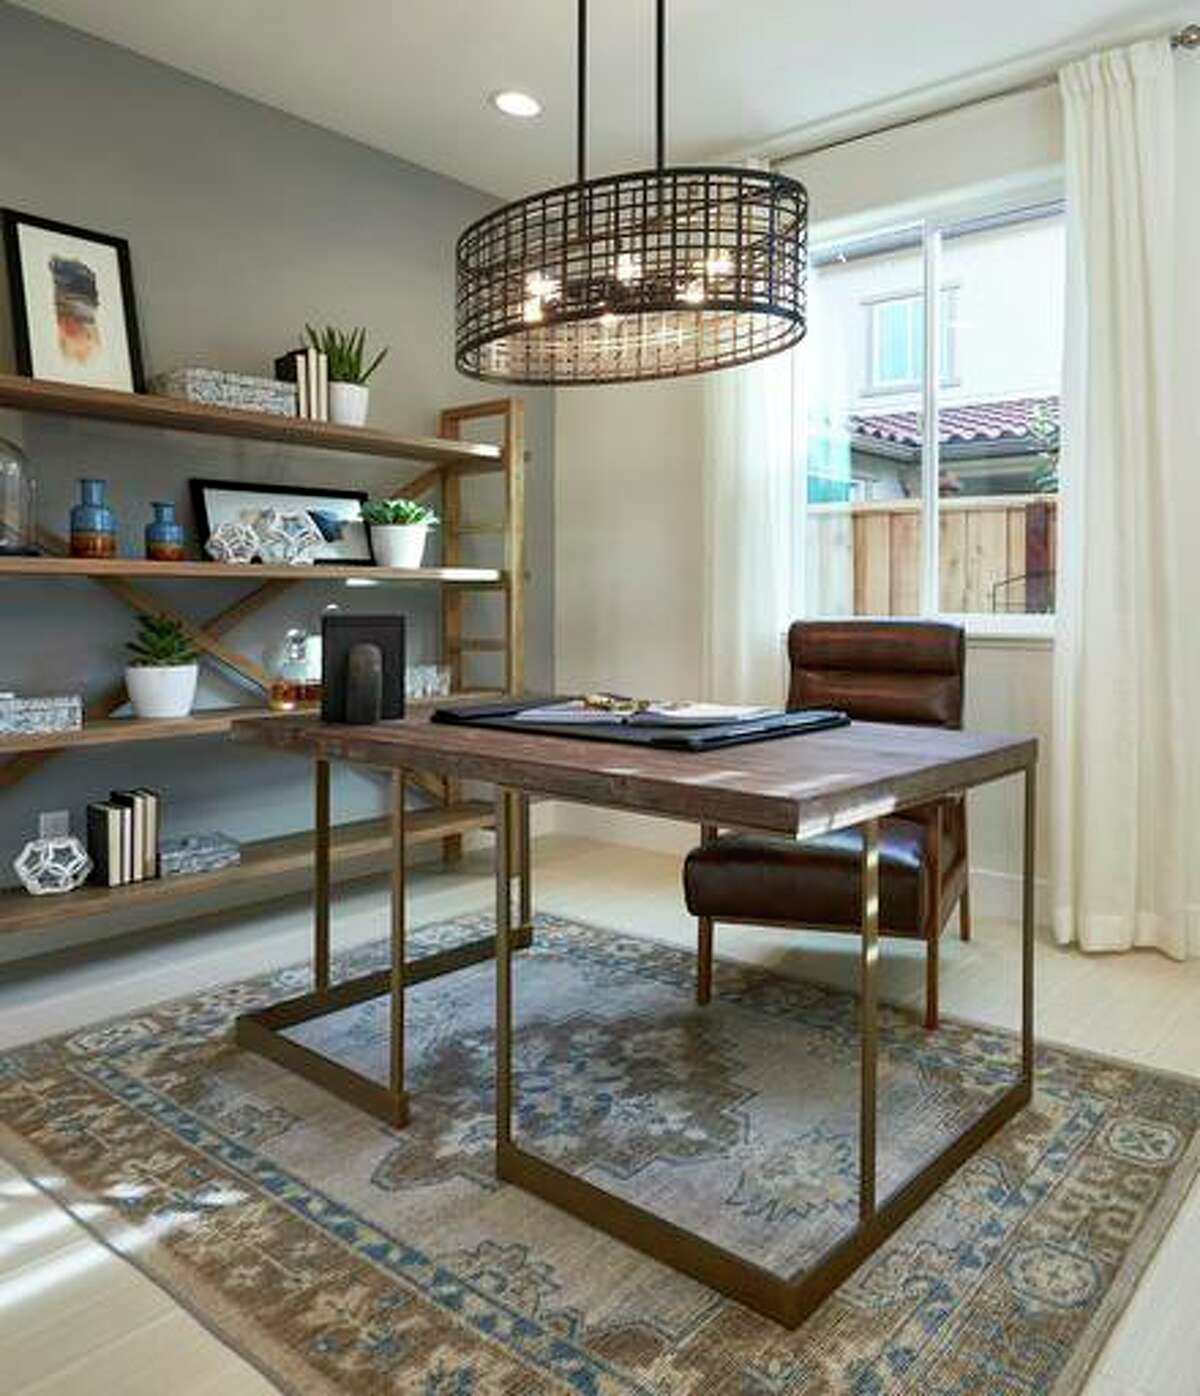 Signature Homes offer flexible bonus spaces that could serve as a home office.